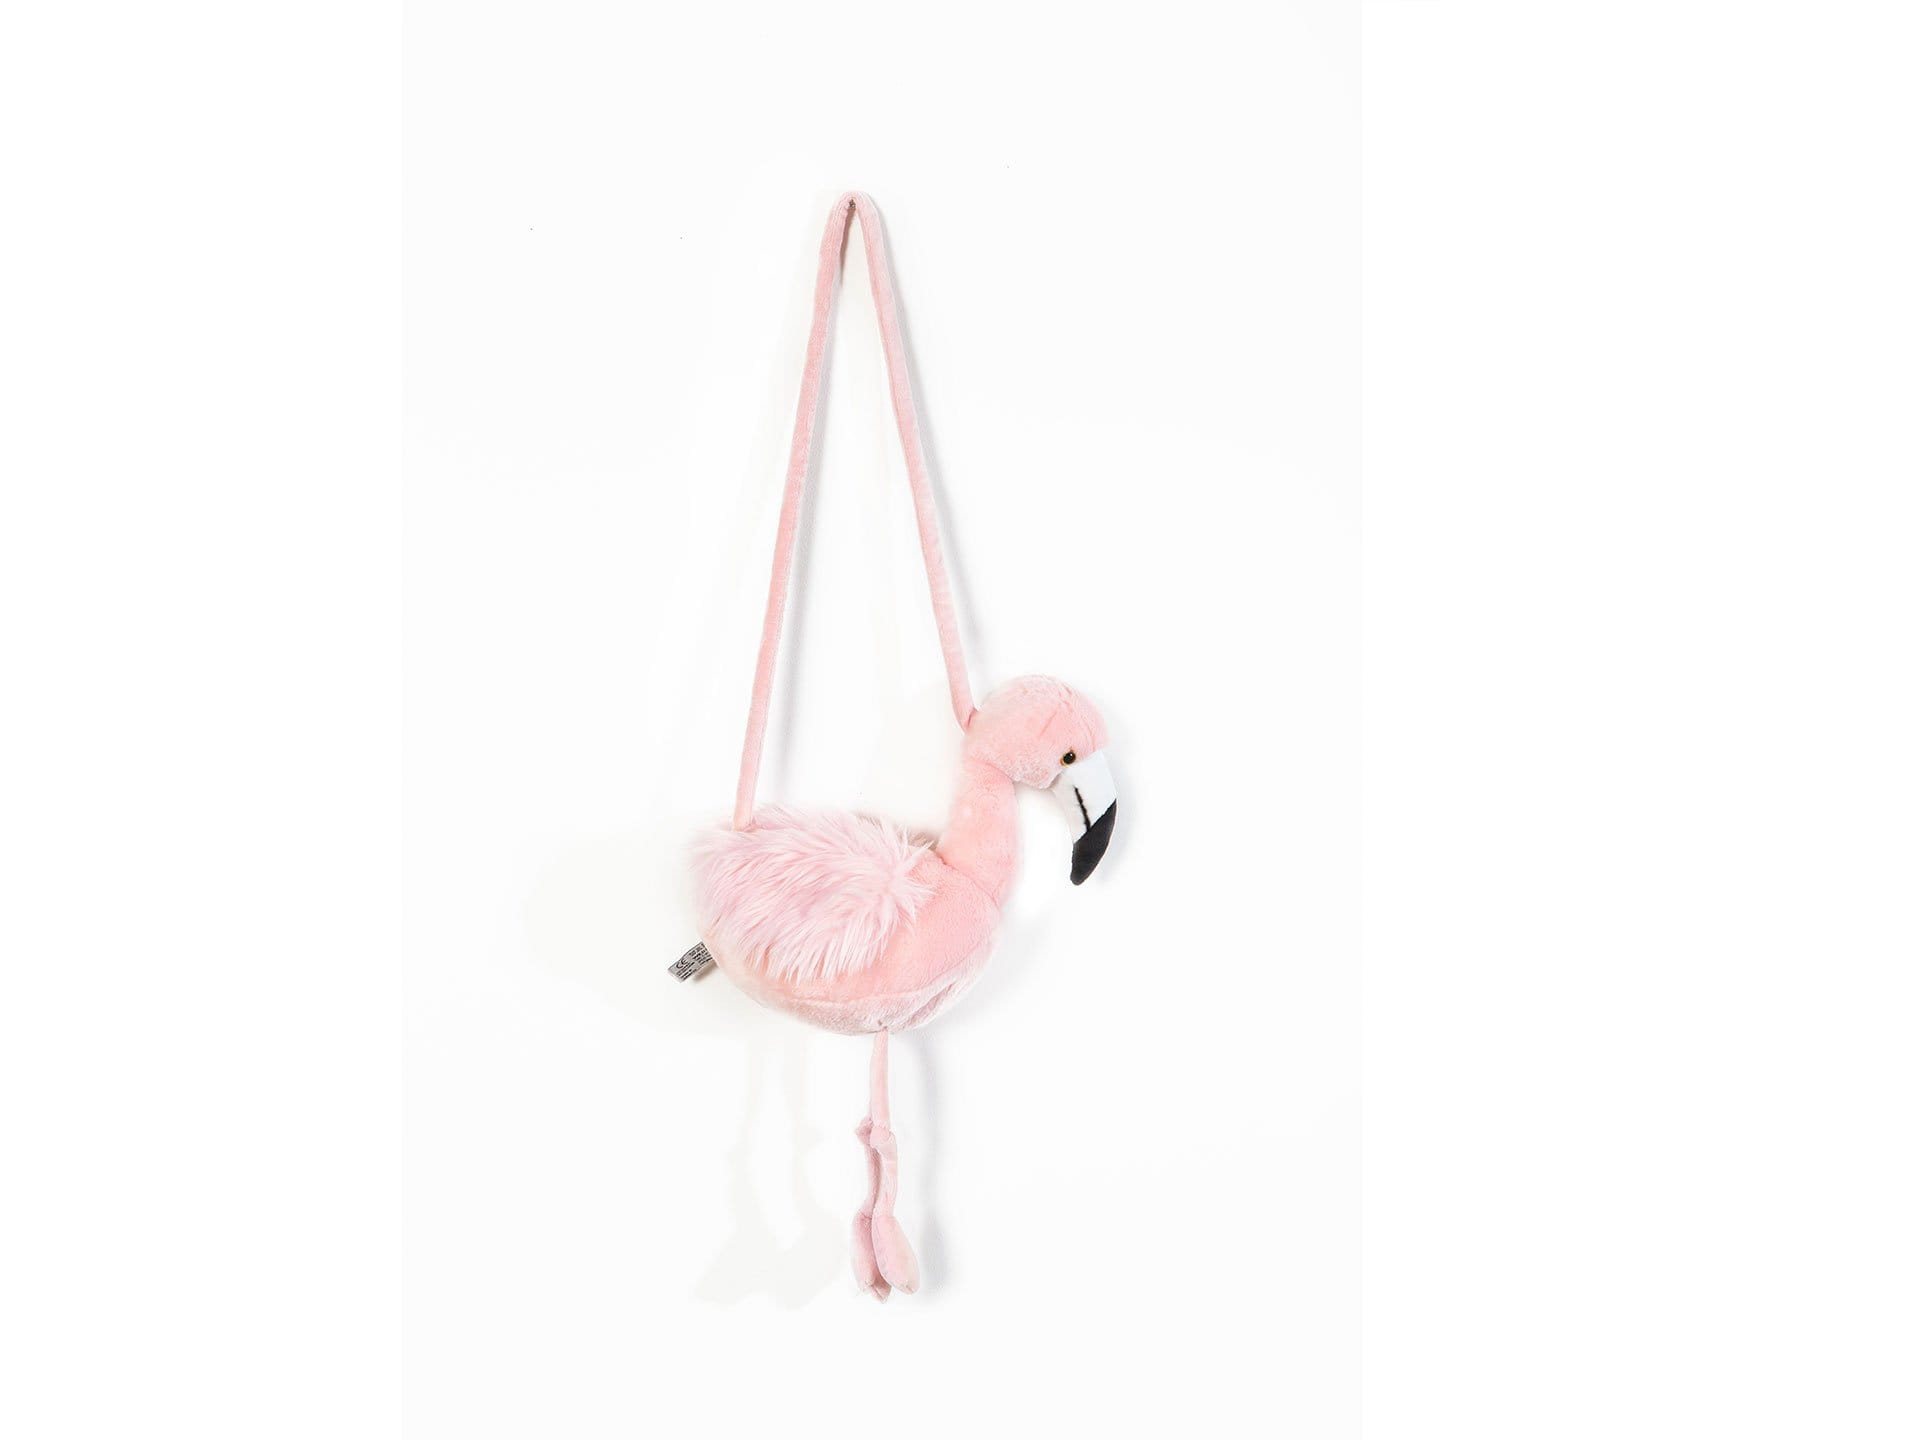 PINK FLAMINGO PURSE SOPHIA